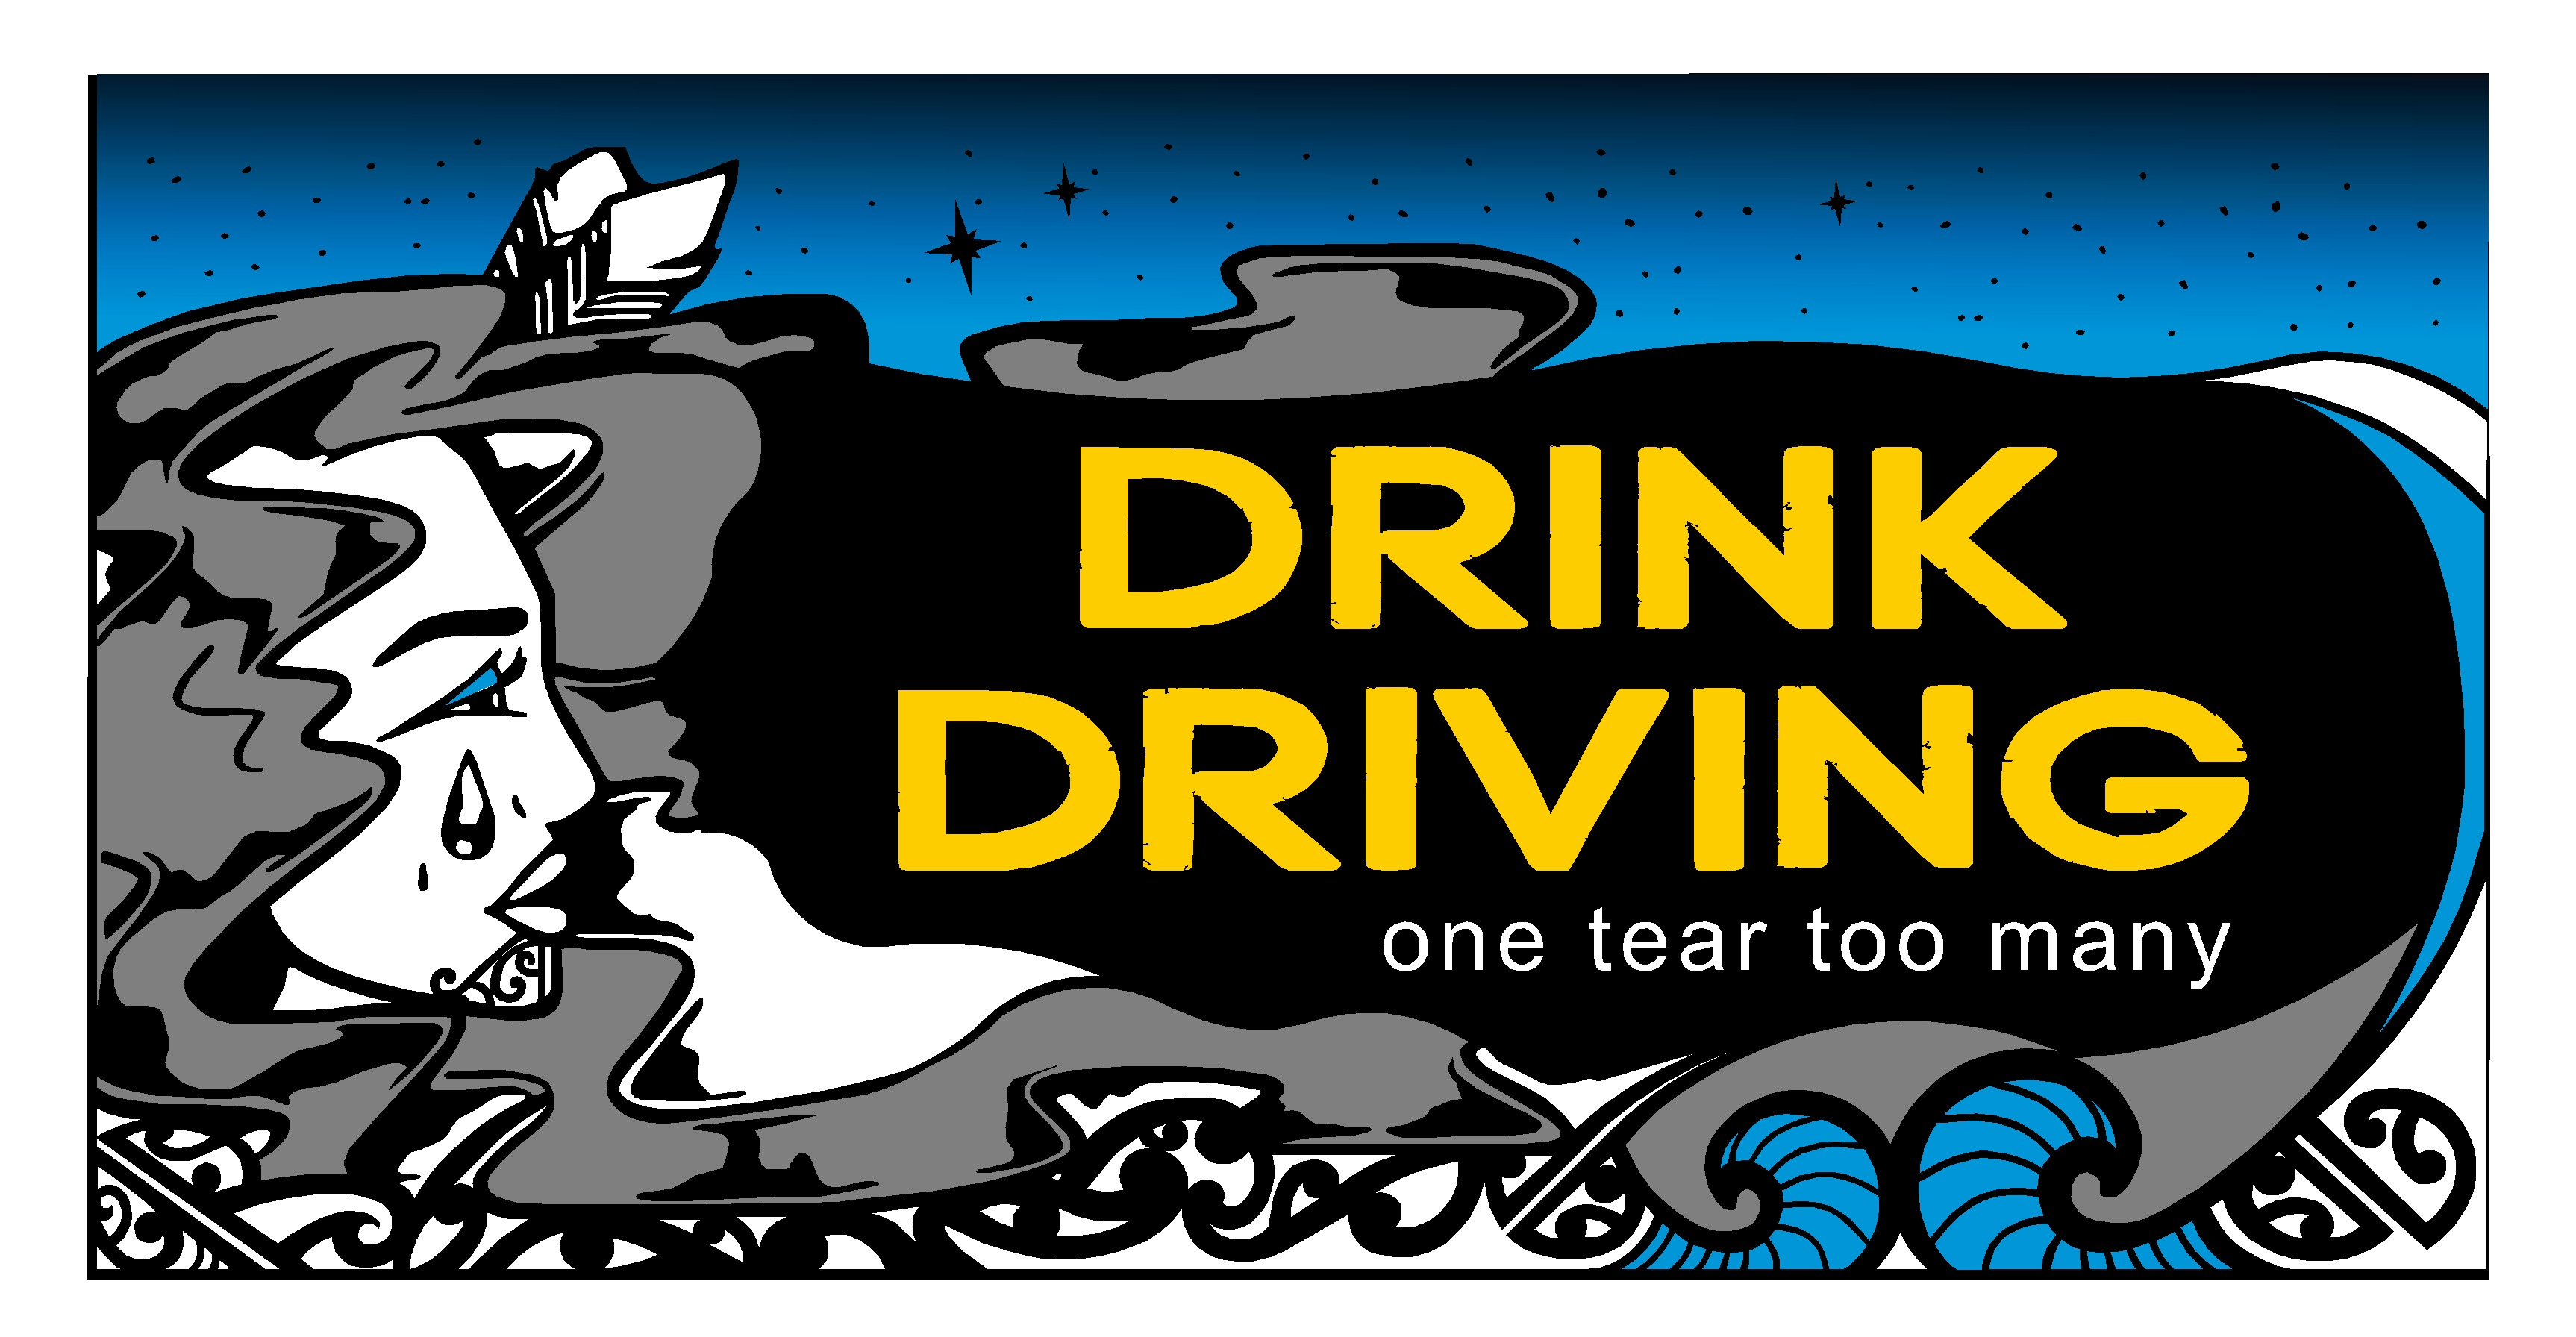 One Tear - drinkdrive image